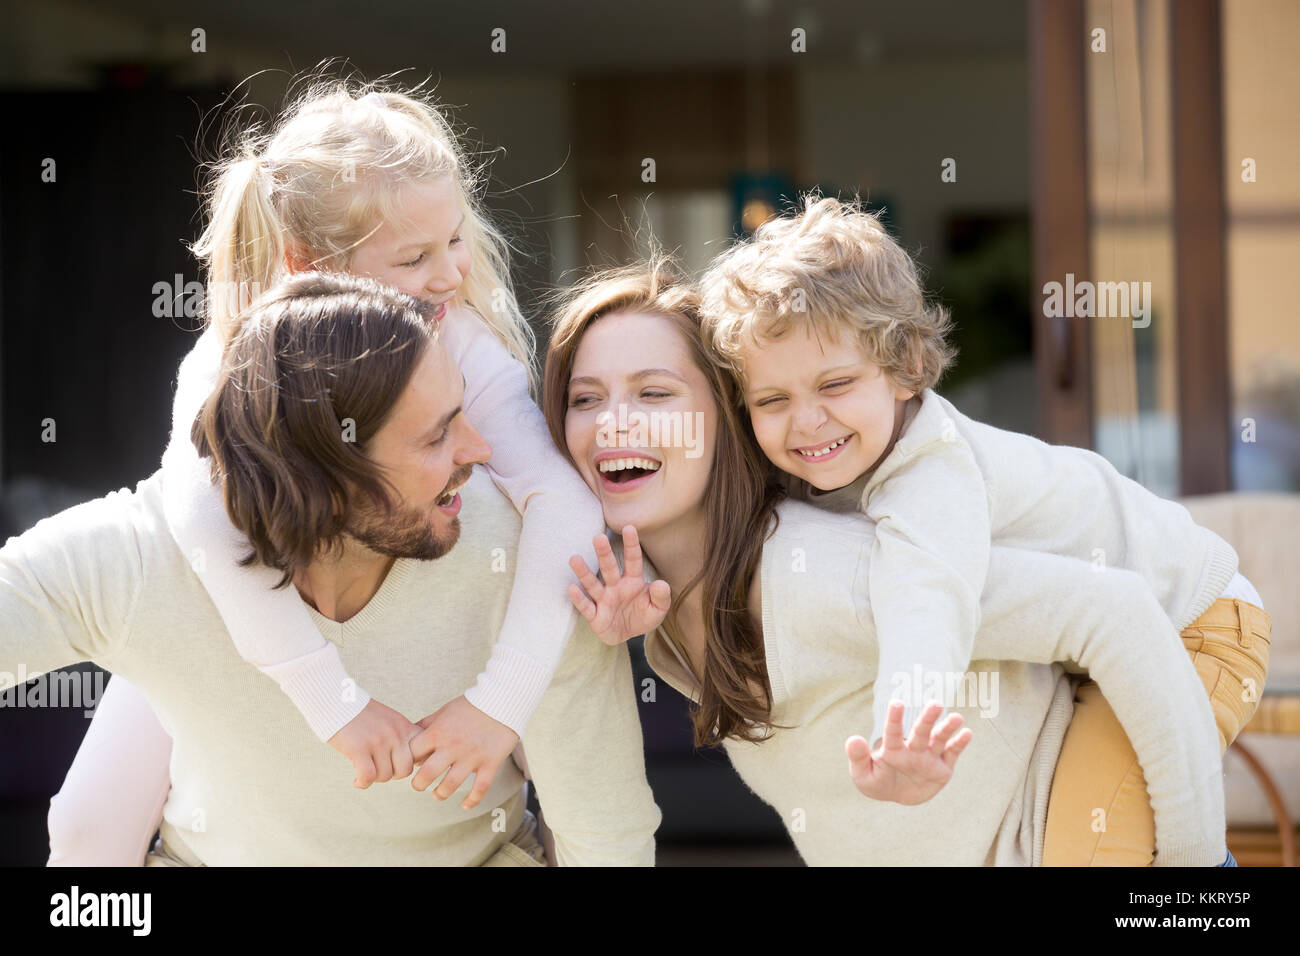 Happy smiling parents piggybacking son and daughter, family leis - Stock Image